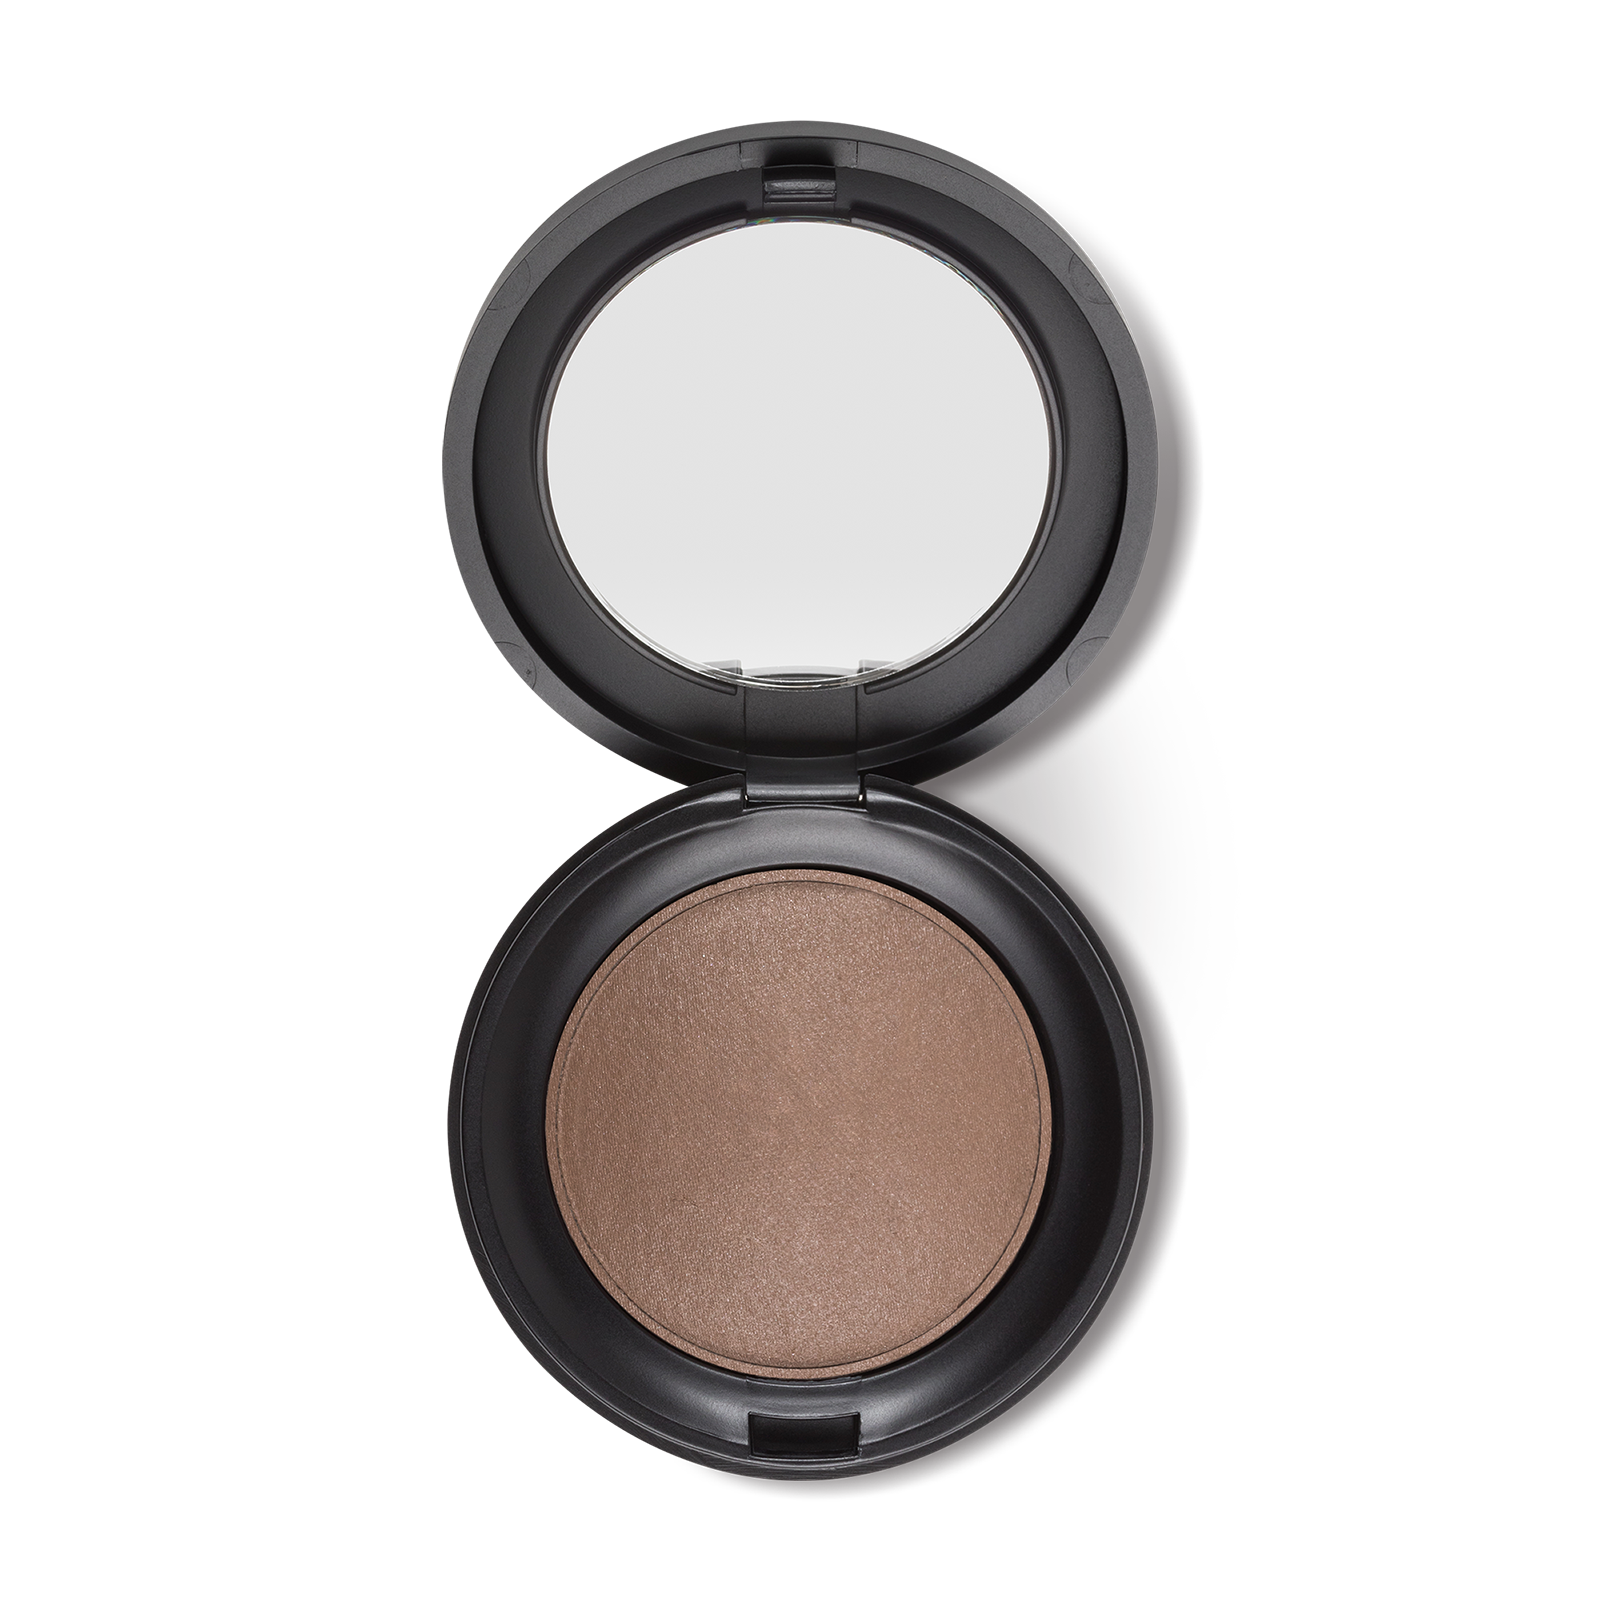 Bronzer product image